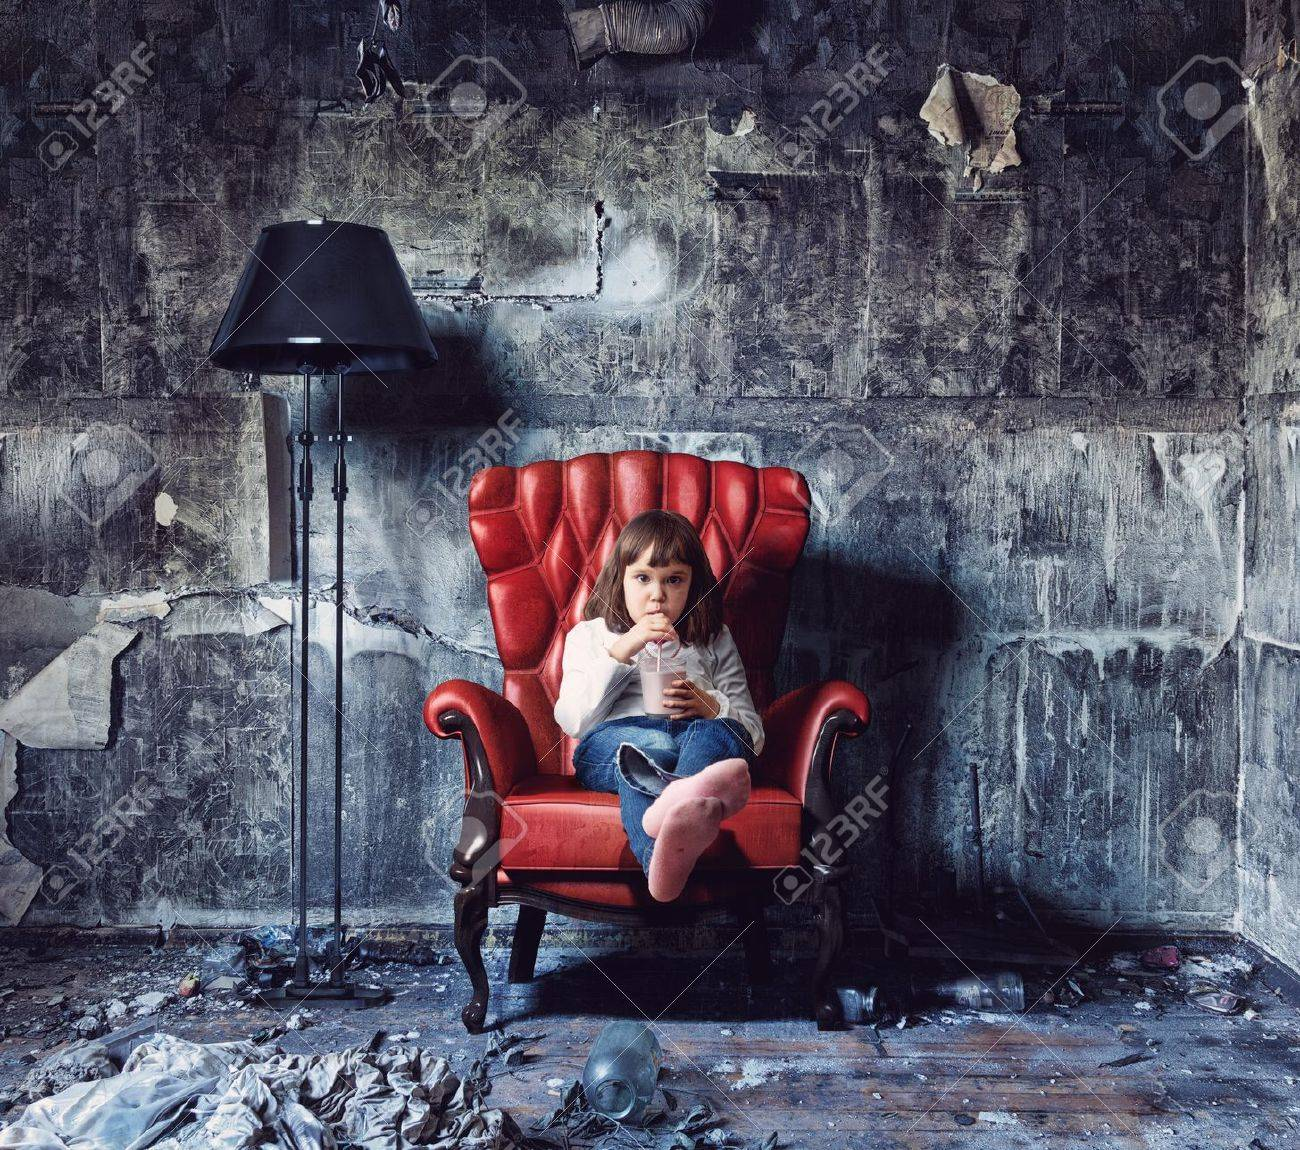 little girl sitting in grunge interior Photo and hand-drawing elements combined - 14094911